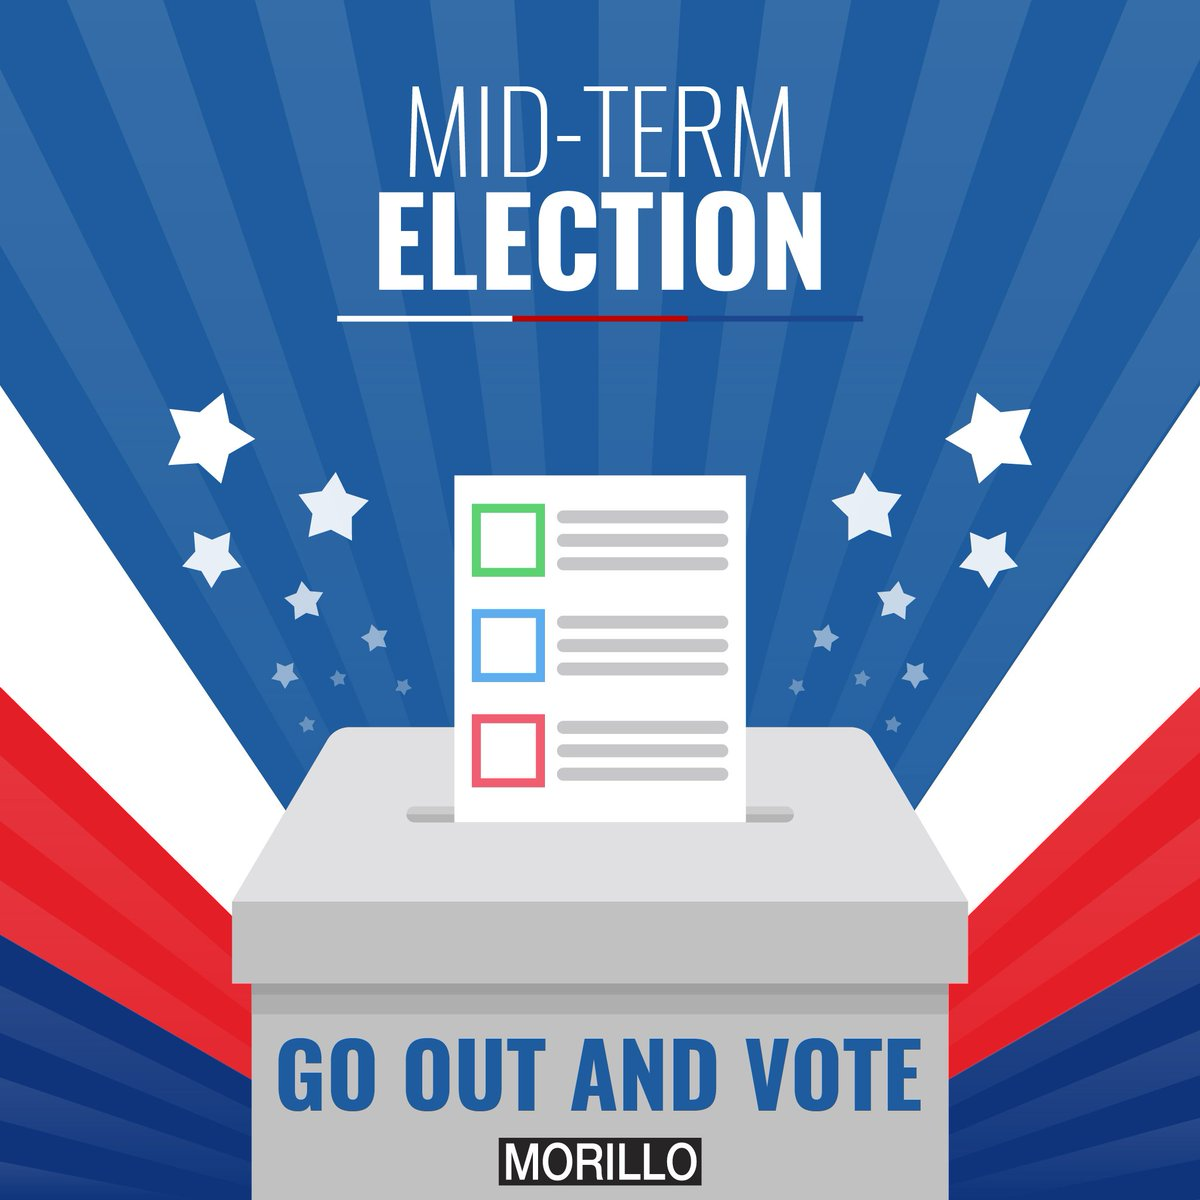 b5f53d83 Write your Answers in the comment box. #MidTermElections #Vote  #YourVoteCounts #Morillo #Americapic.twitter.com/UASwmIlfYr